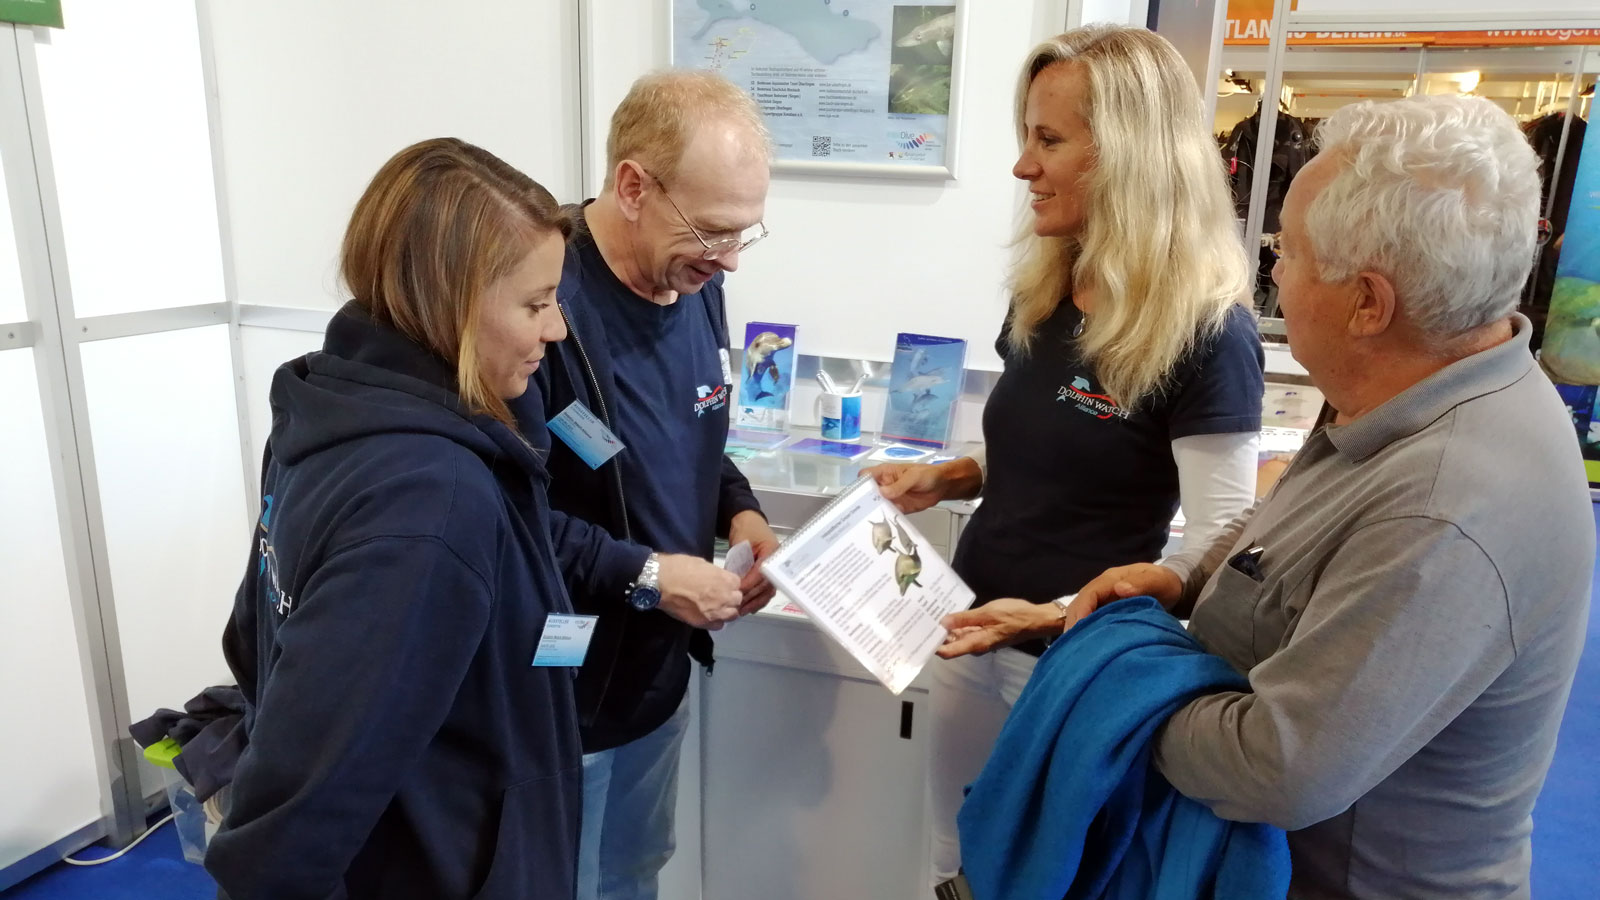 Dolphin Watch Alliance at the Interdive in Friedrichtshafen